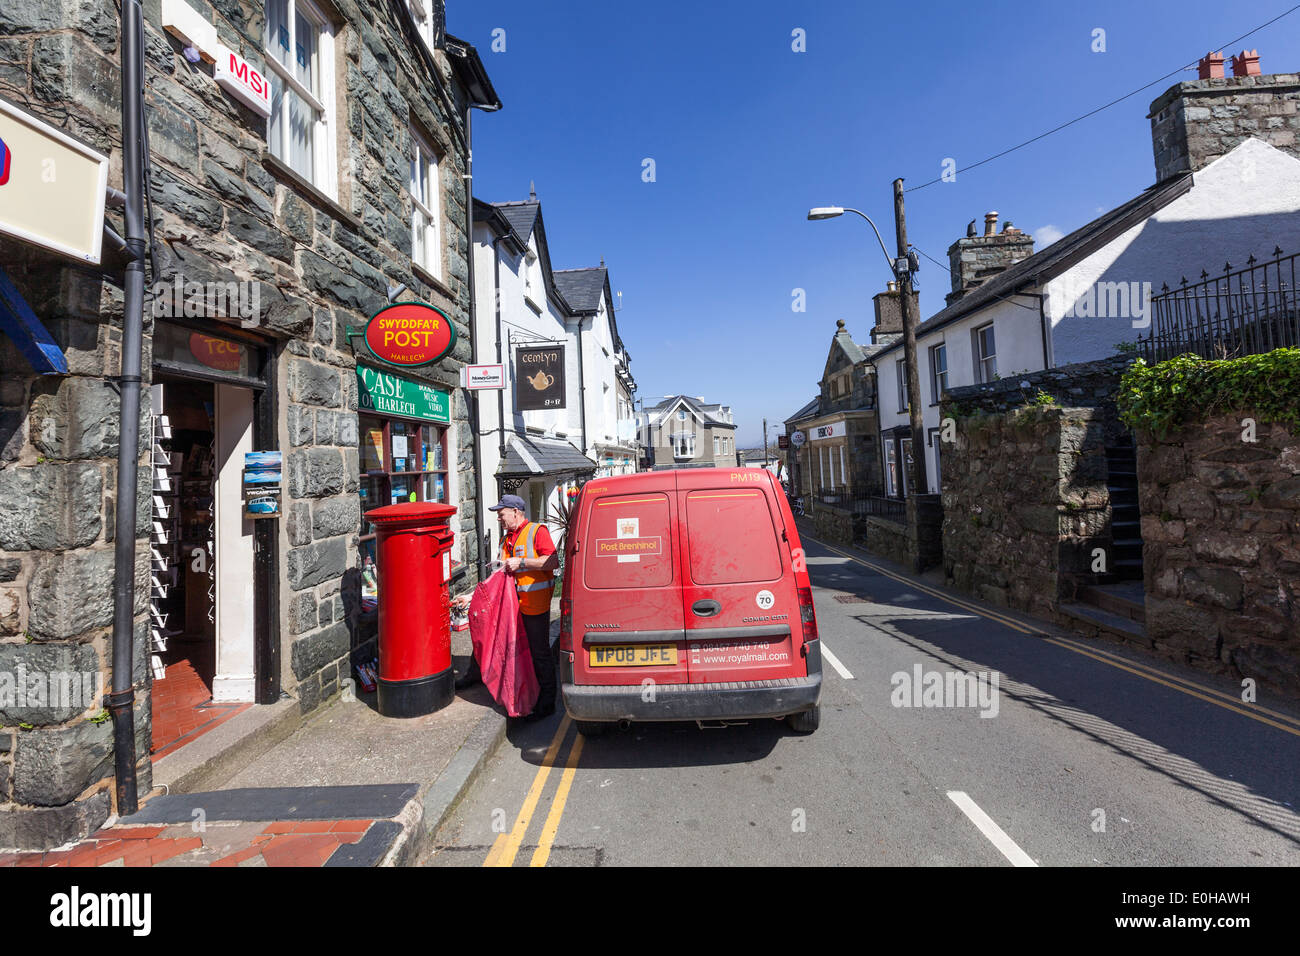 Postman recollecting letters in a post box in Stryd Fawr view, Harlech, - Stock Image